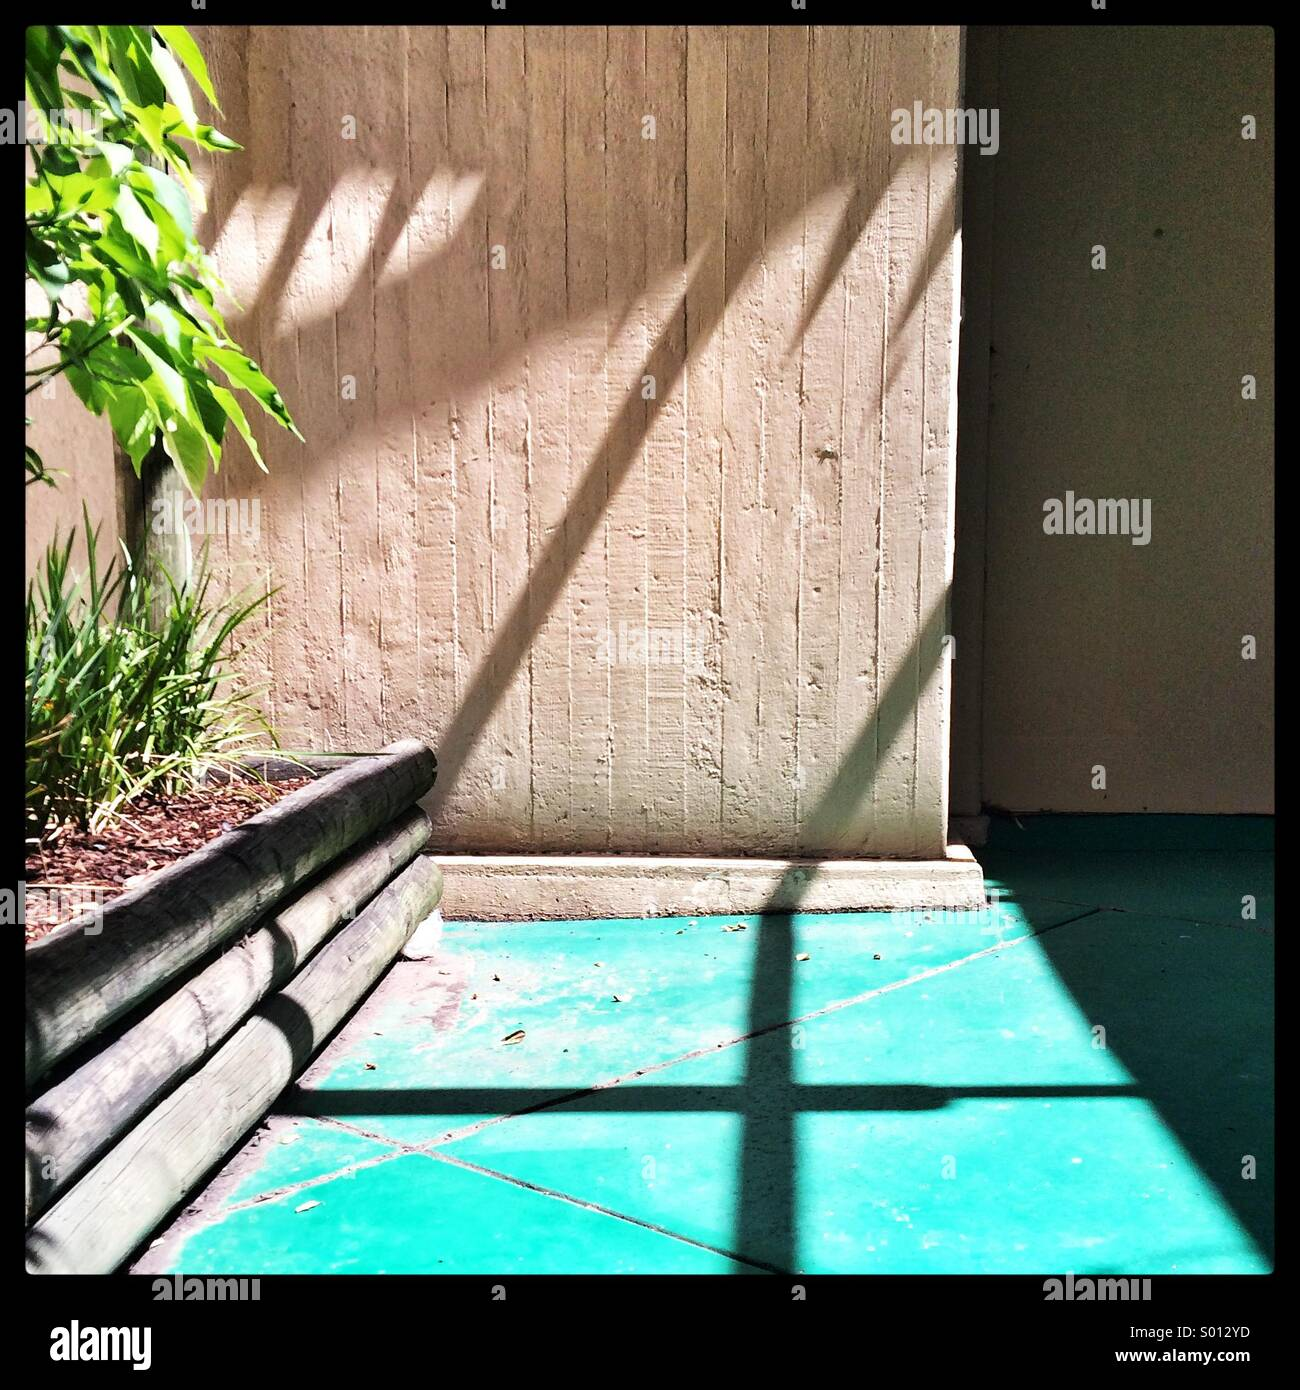 Shadows cast on a wall and floor in an outdoor setting in the middle of the day. - Stock Image